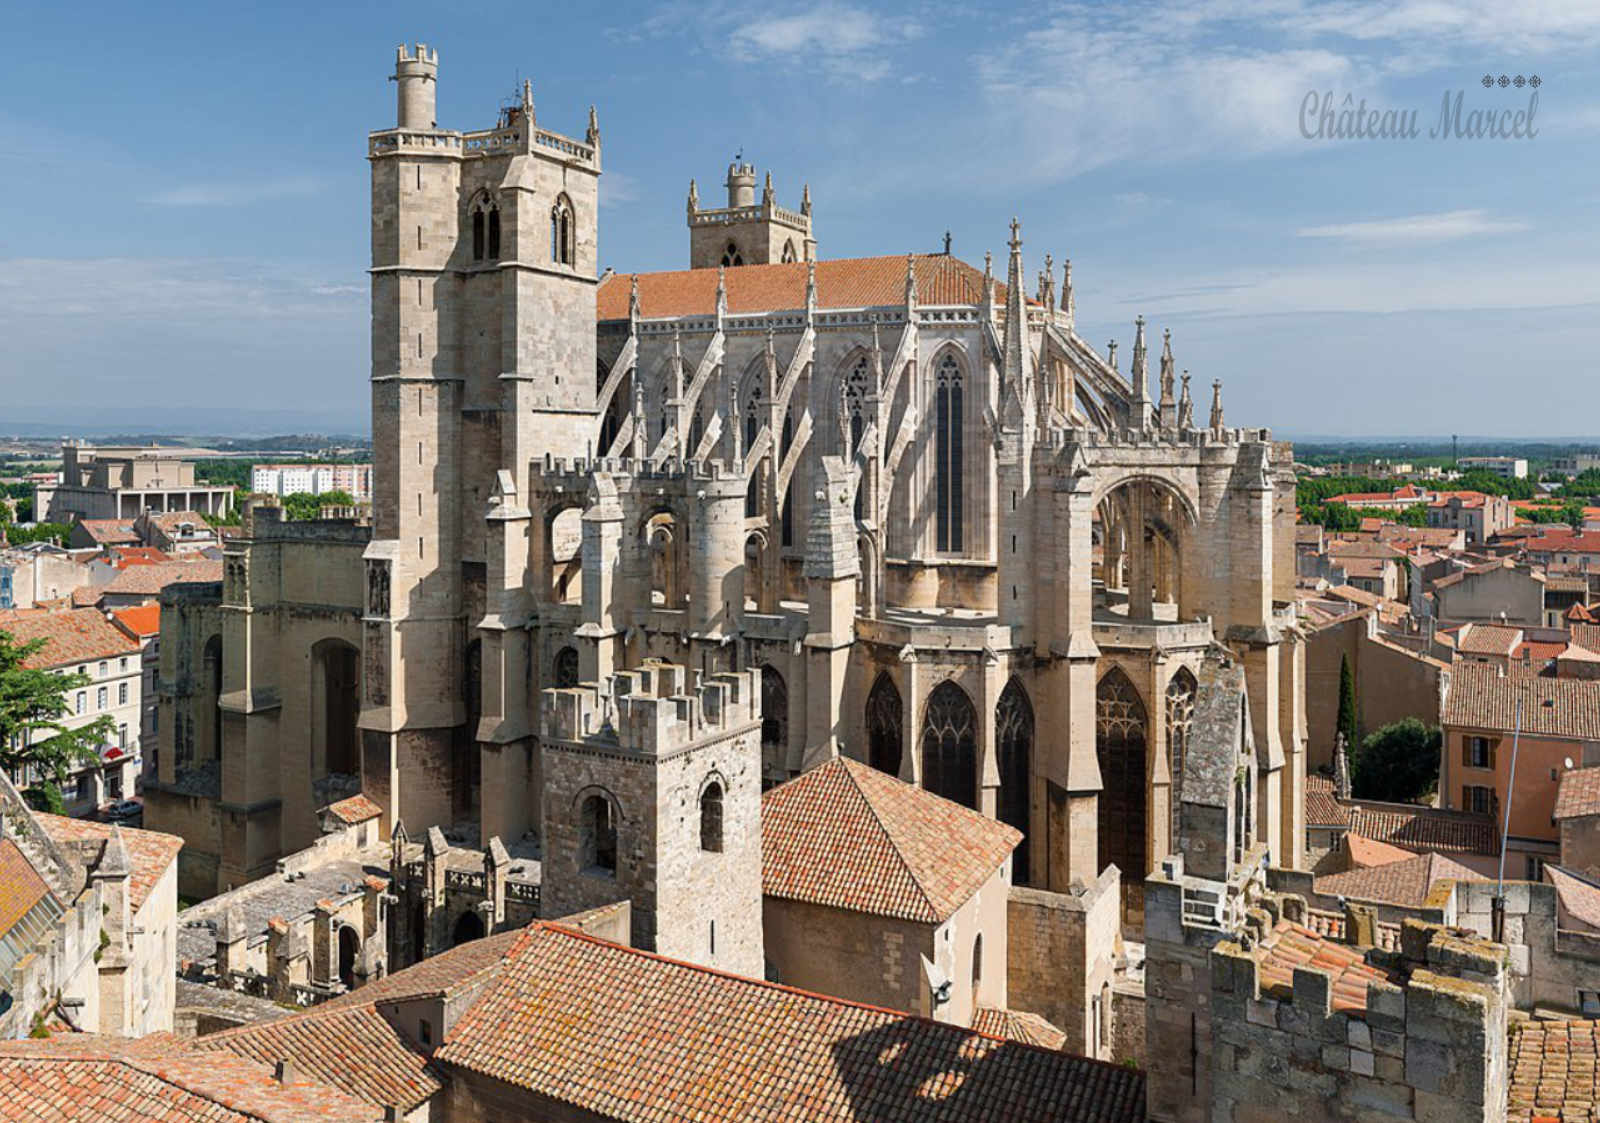 Saint-Just and Saint-Pasteur cathedral, seen from Gilles Aycelin dungeon, in Narbonne, South of France.